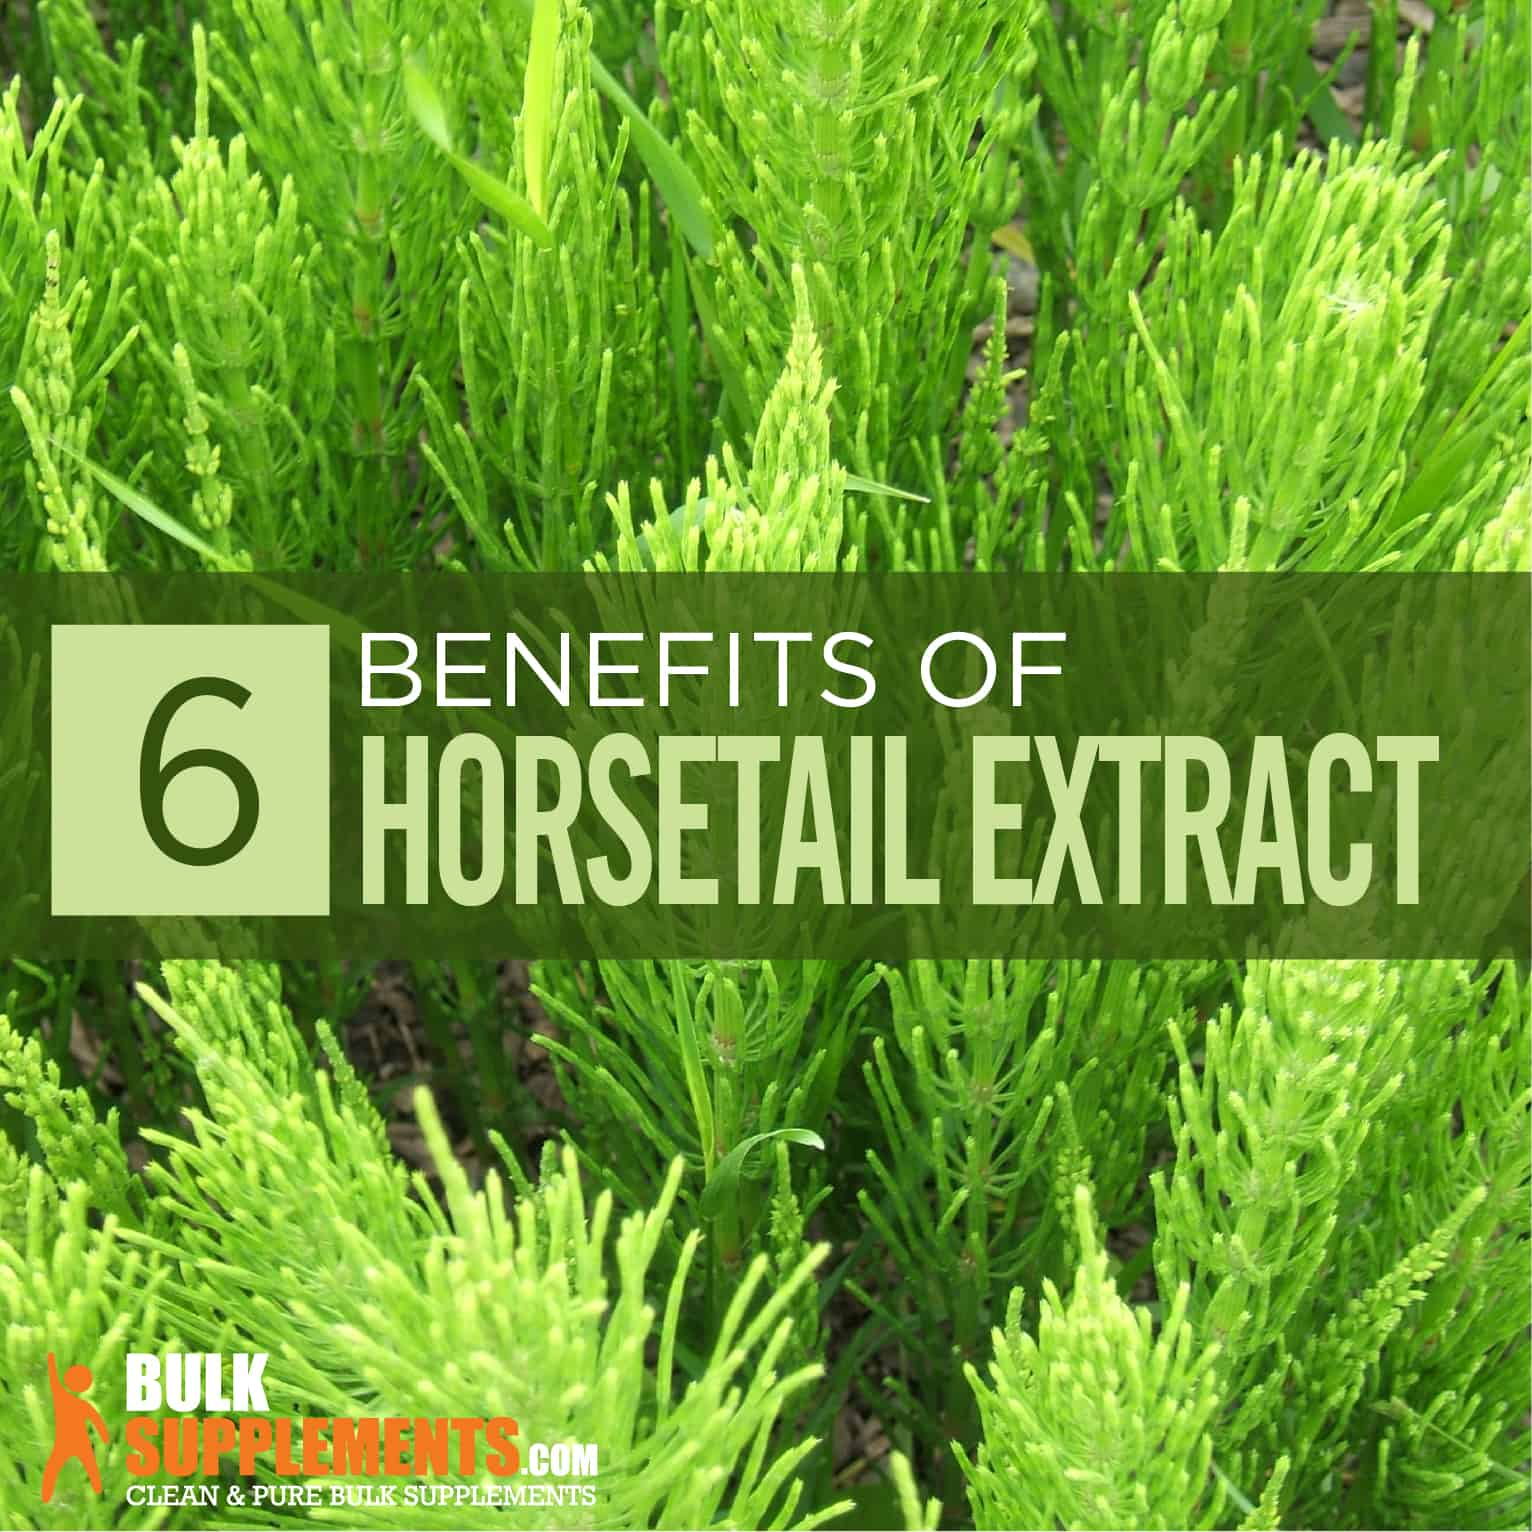 Horsetail Extract